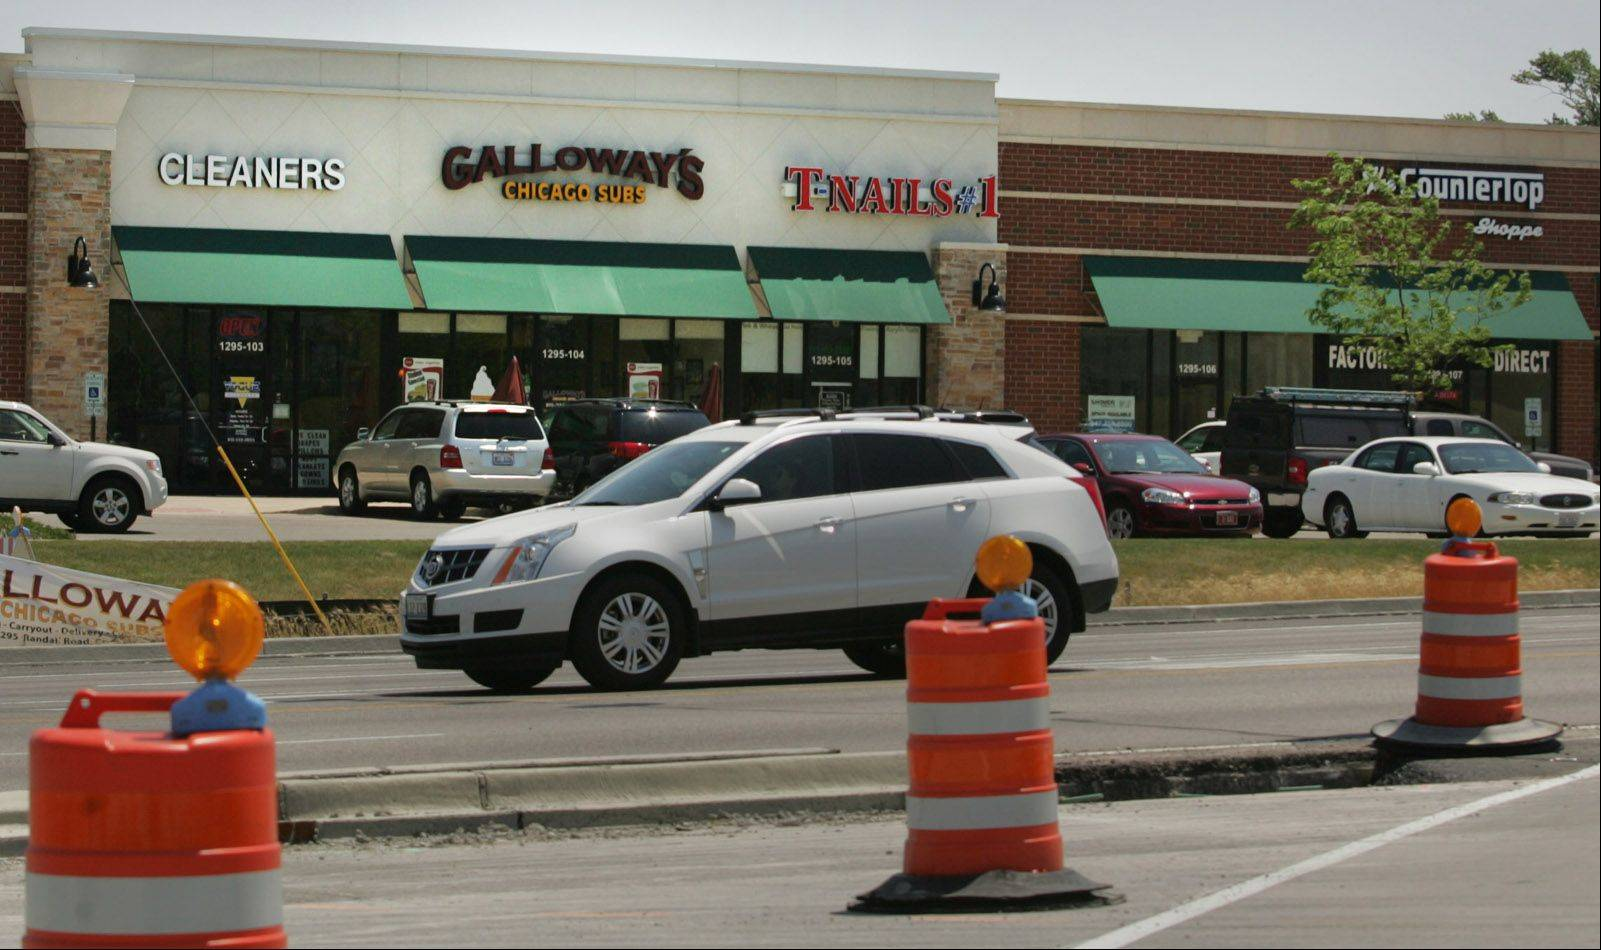 Galloway's Chicago Subs in Crystal Lake has been affected, like many businesses in the area, by road construction.